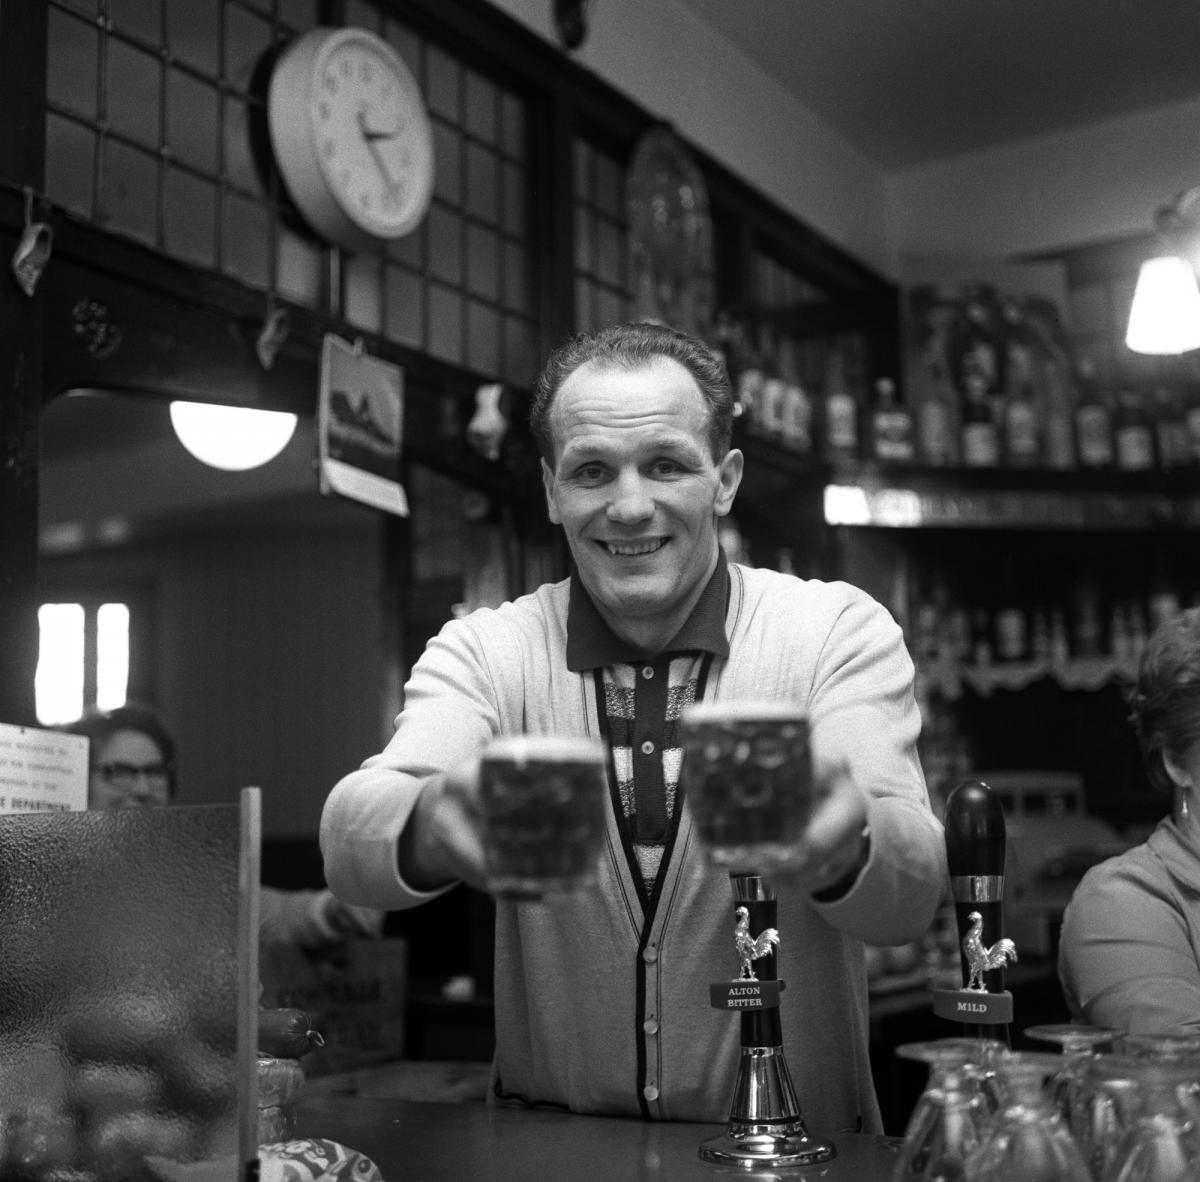 Henry Cooper behind the bar at the Fellowship Inn